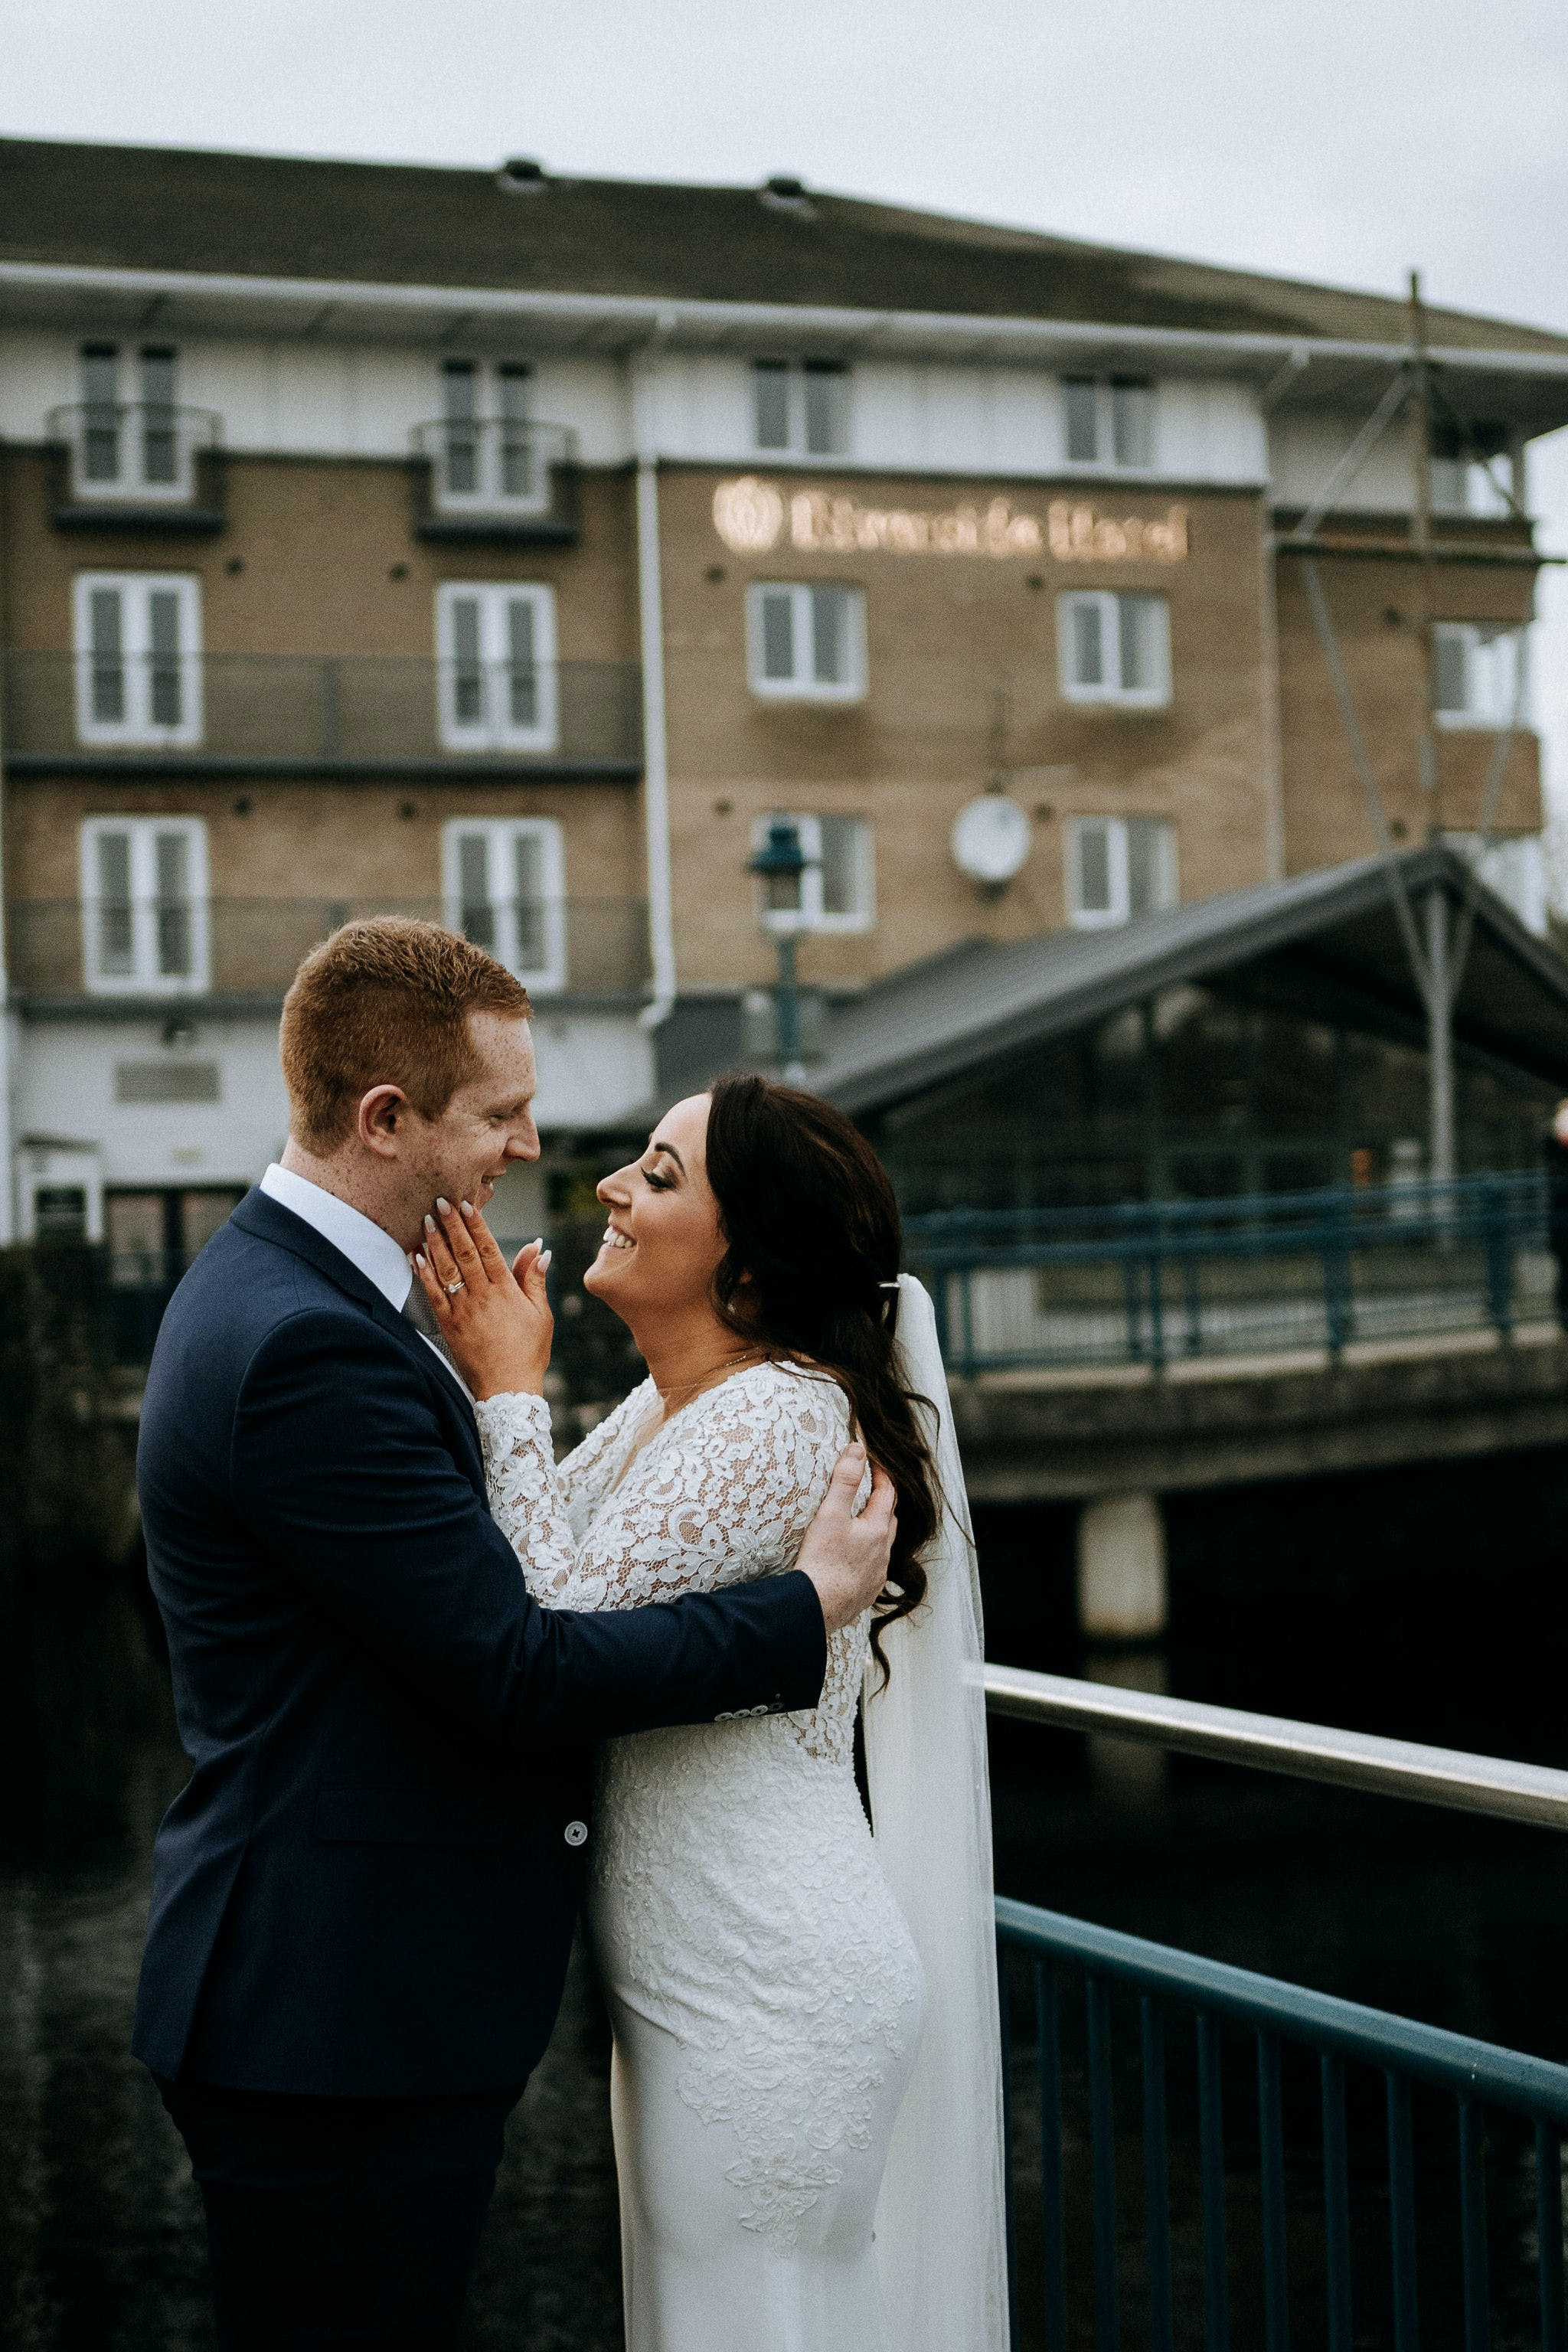 A tender moment between Nicole and Jason during their wedding at Riverside Hotel.